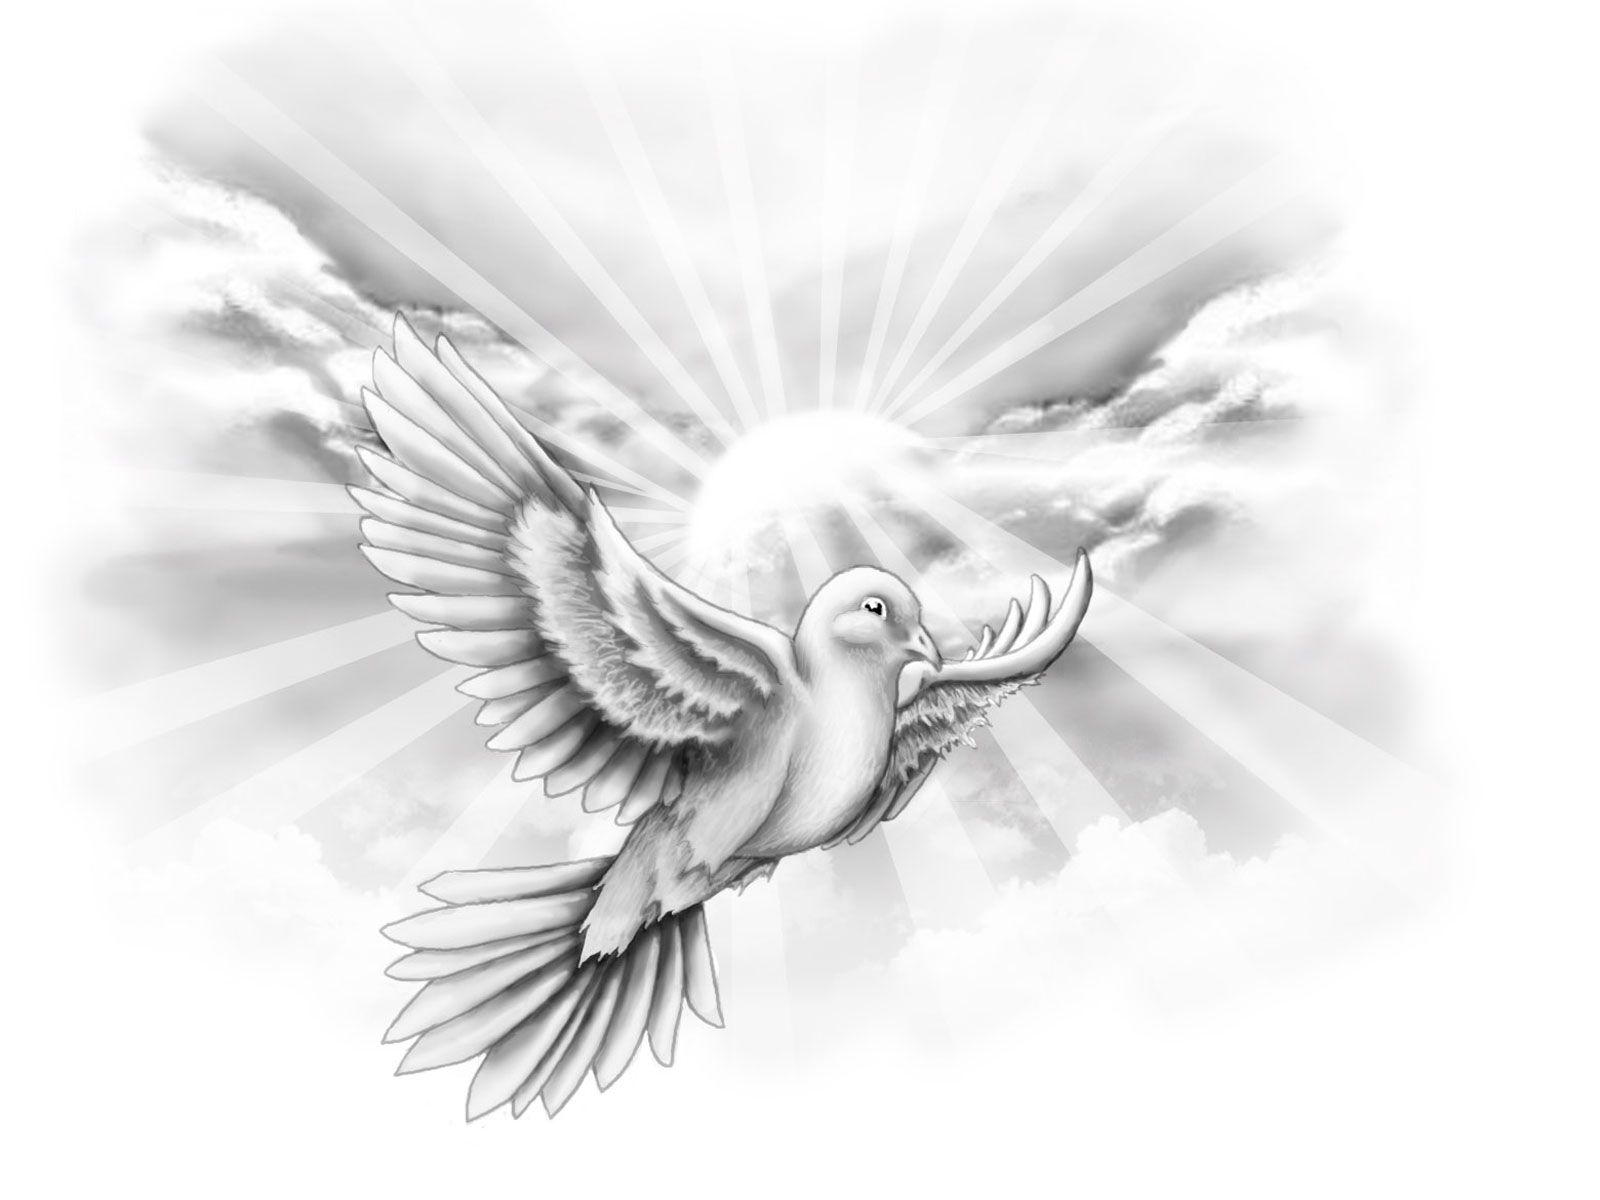 Sunrise tribal tattoo designs tribal sun - Dove Flying With Clouds Tattoo Free Designs White Dove On The Sky Tattoo Wallpaper